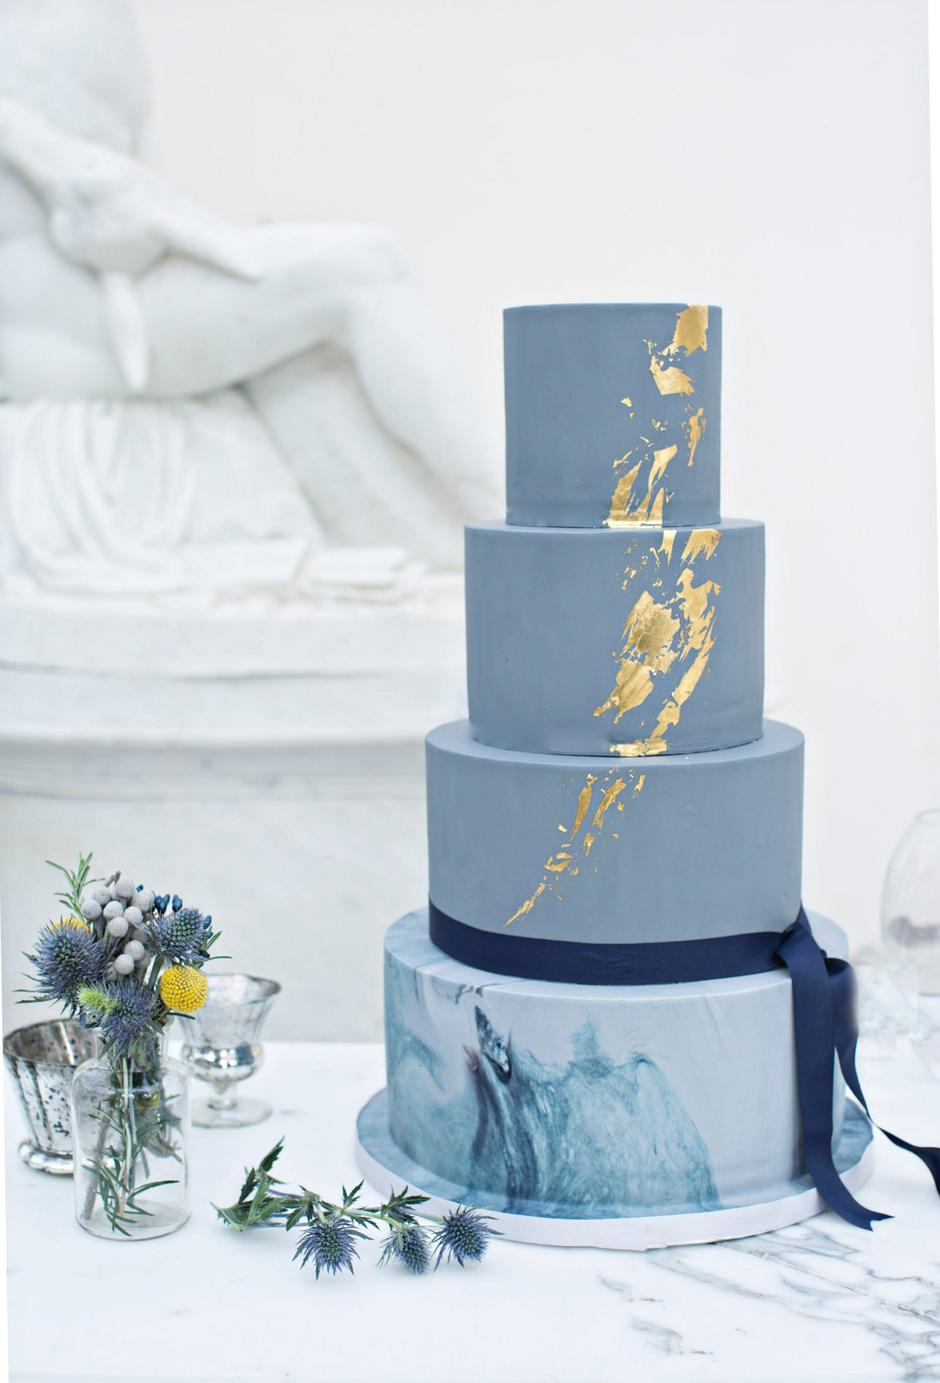 The great wedding bake-off